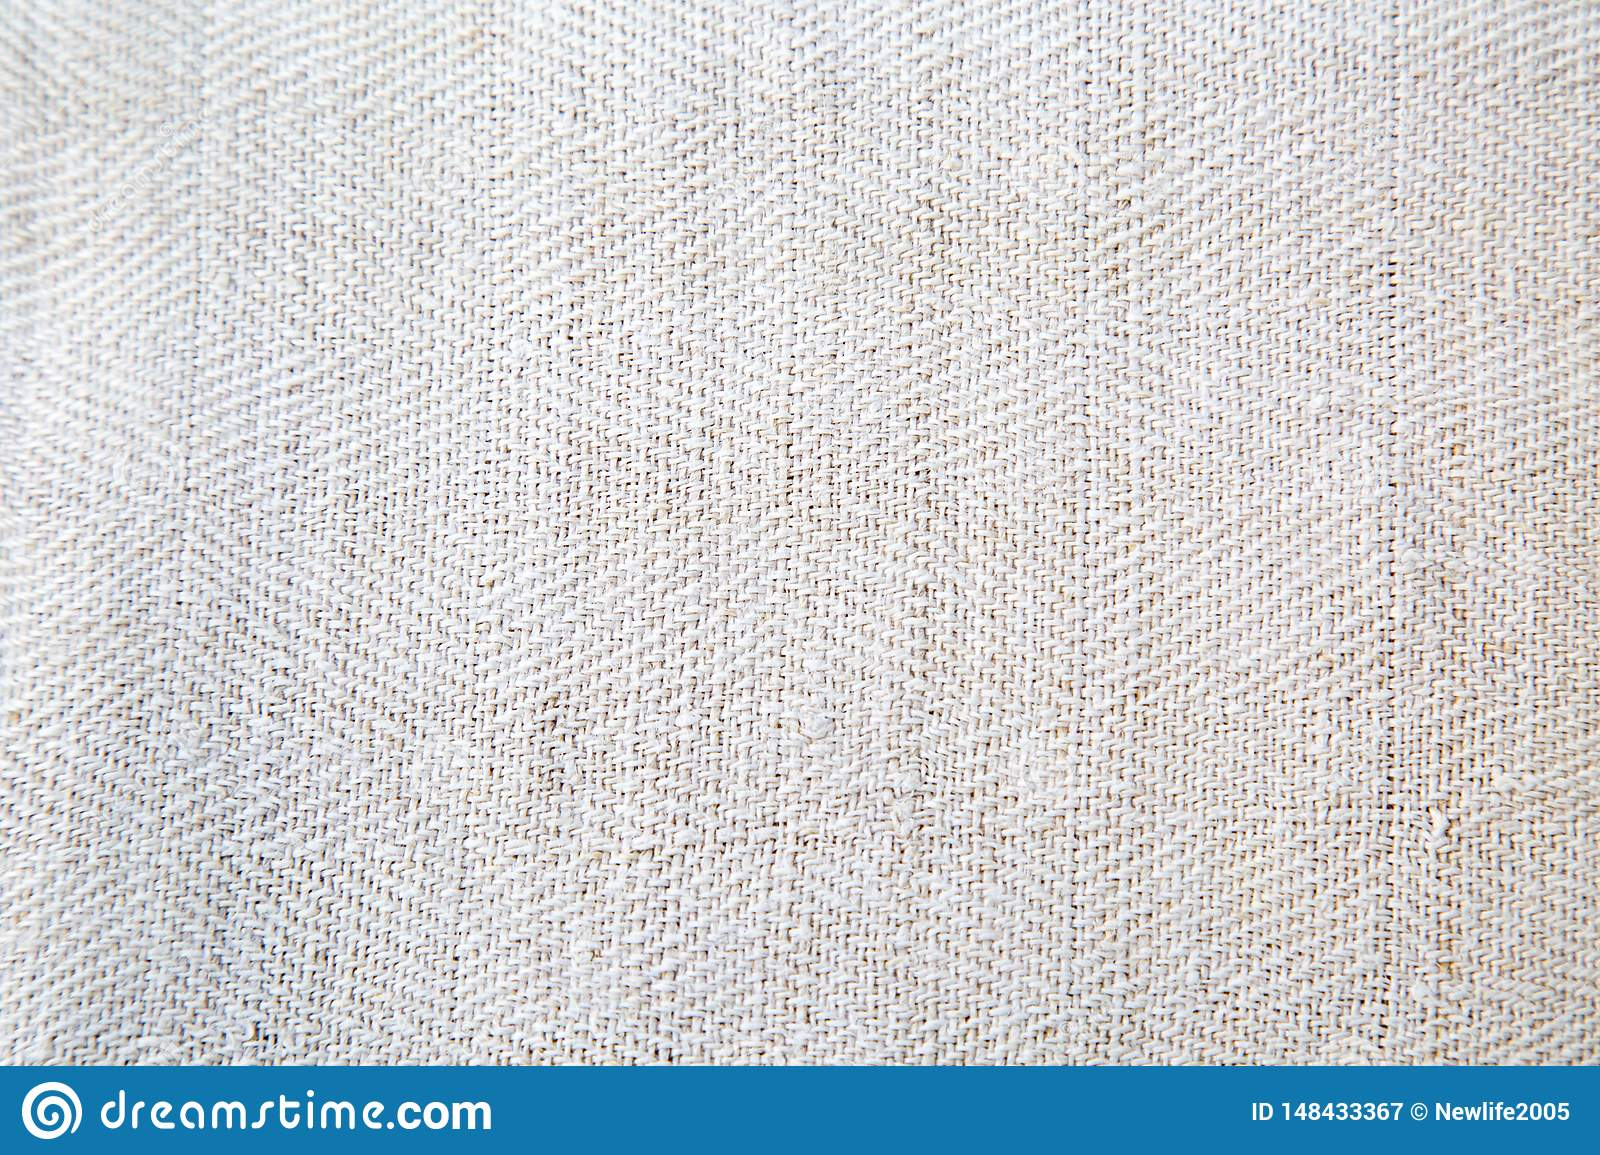 Texture of natural linen fabric with pattern.